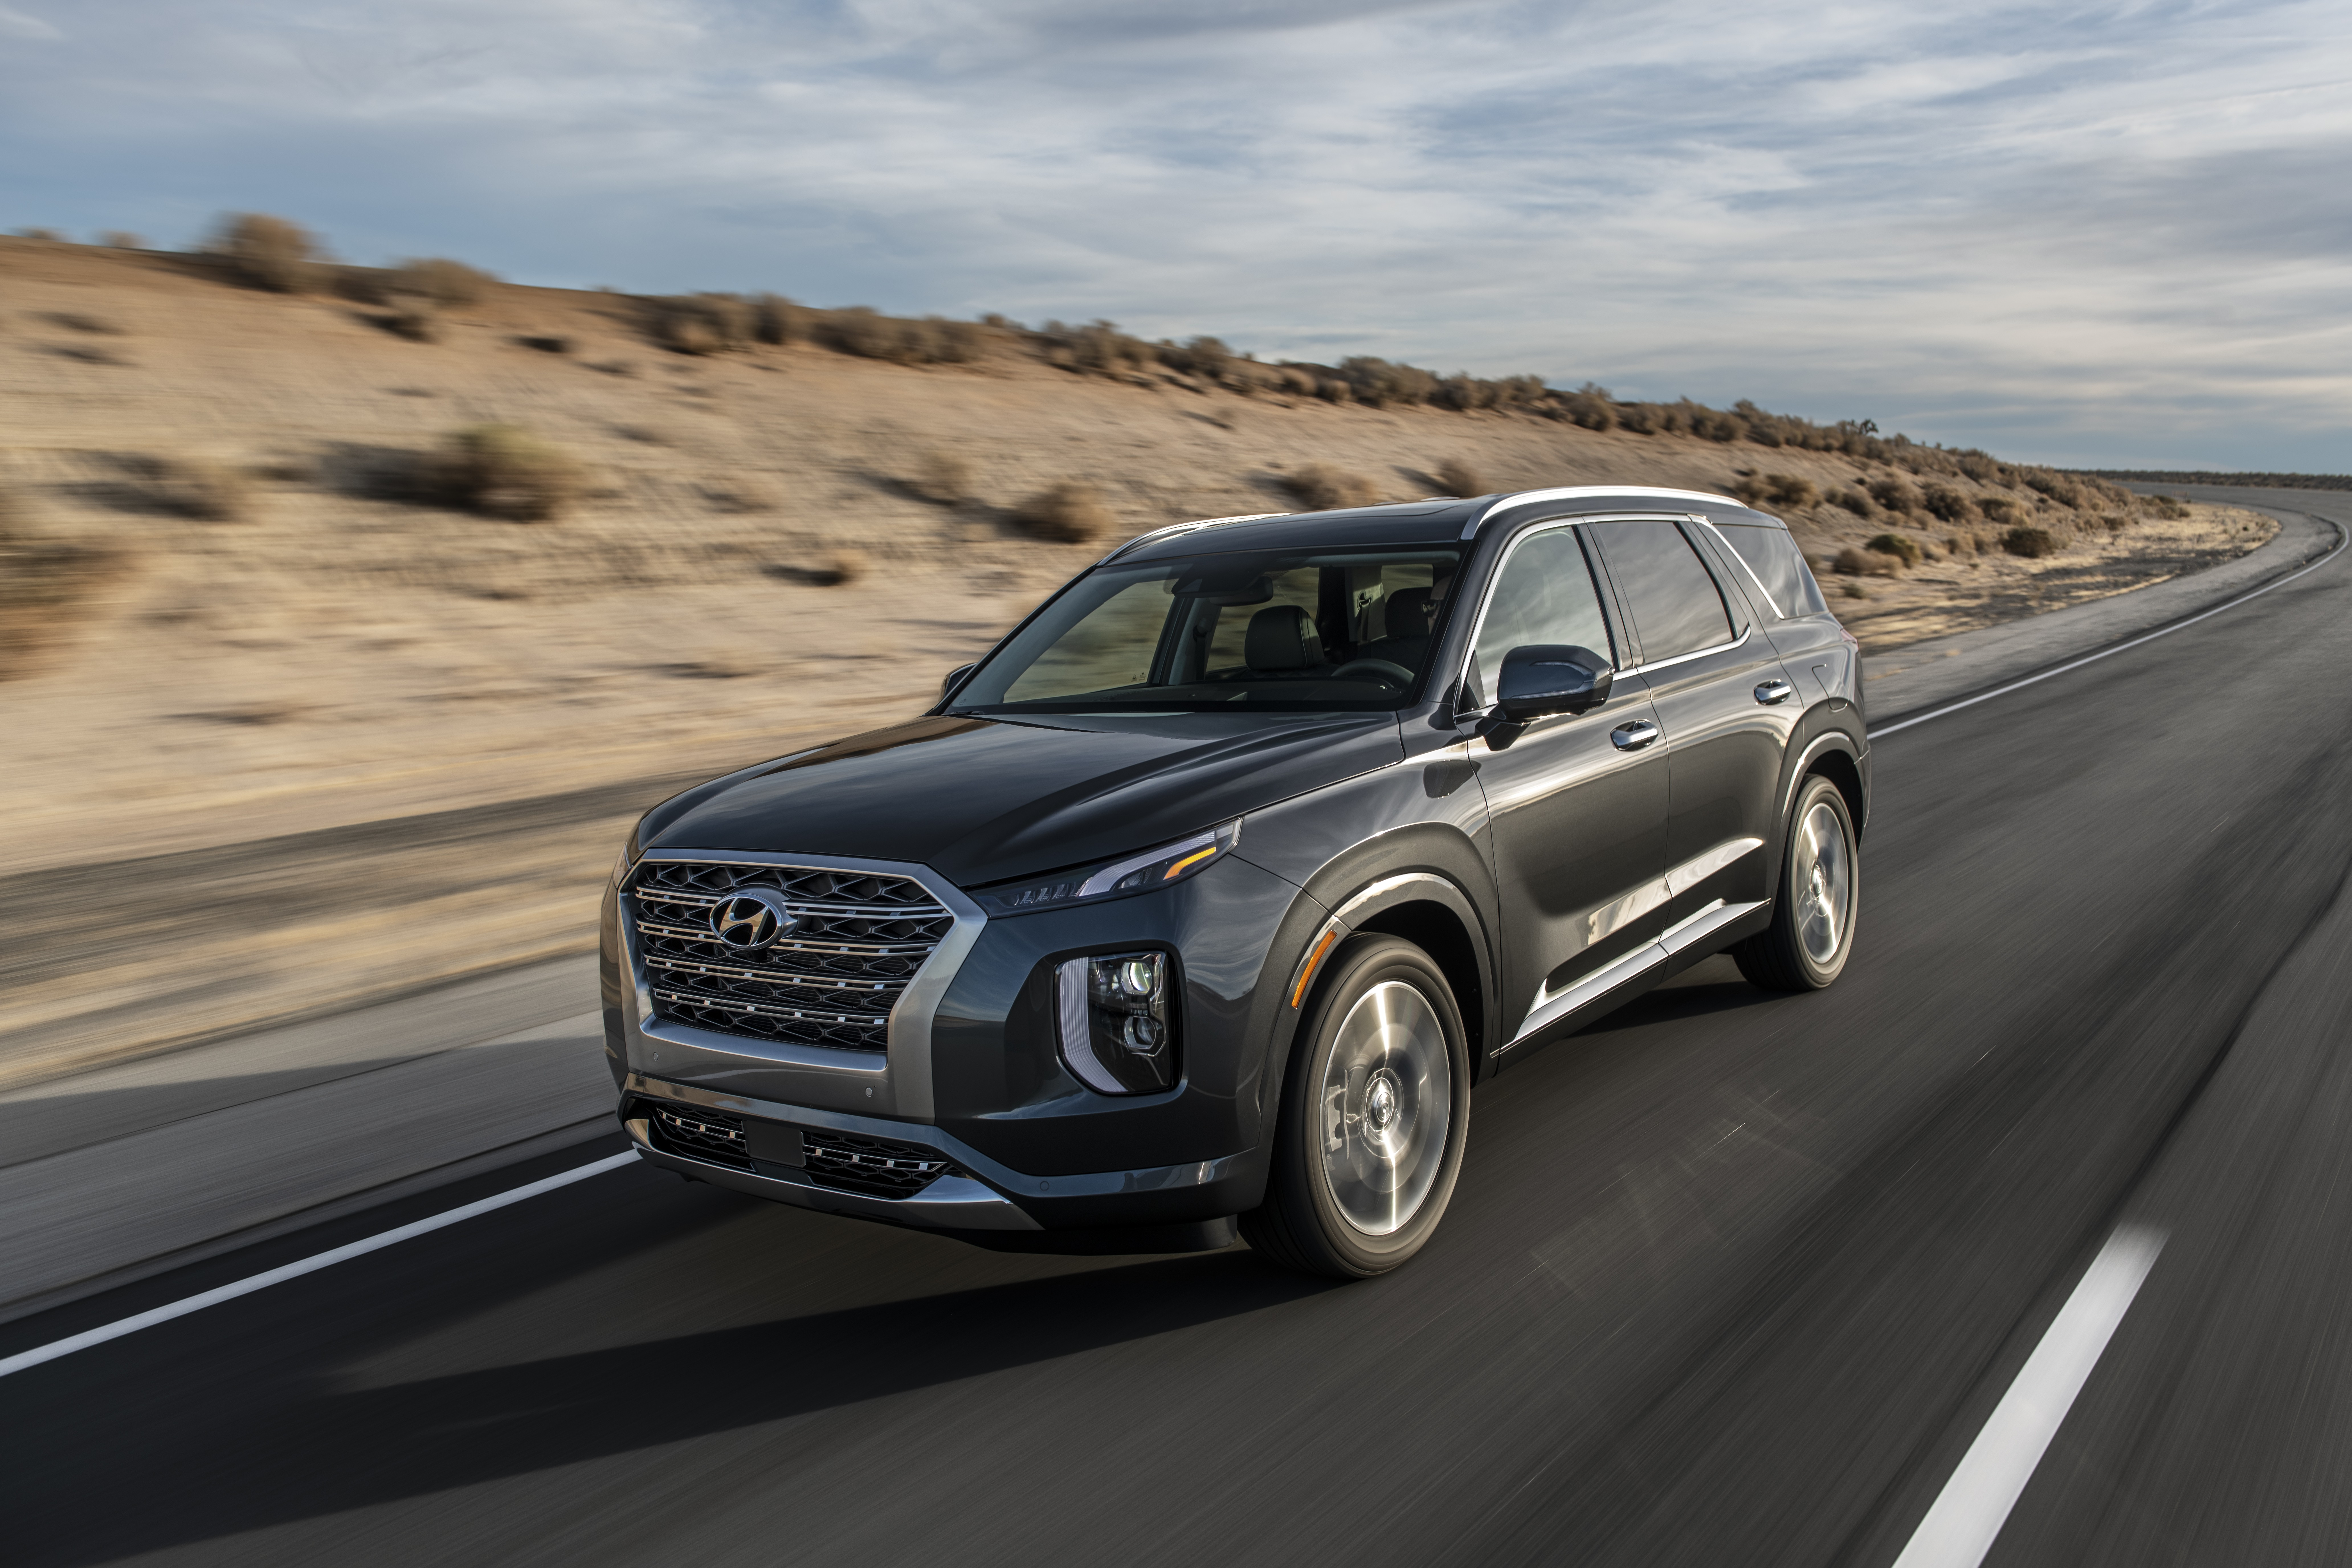 This New Hyundai Suv Is The Ultimate Family Vehicle For Practical Comfortable Daily Use And Memory Making Road Trips Whenever Eal Of Open